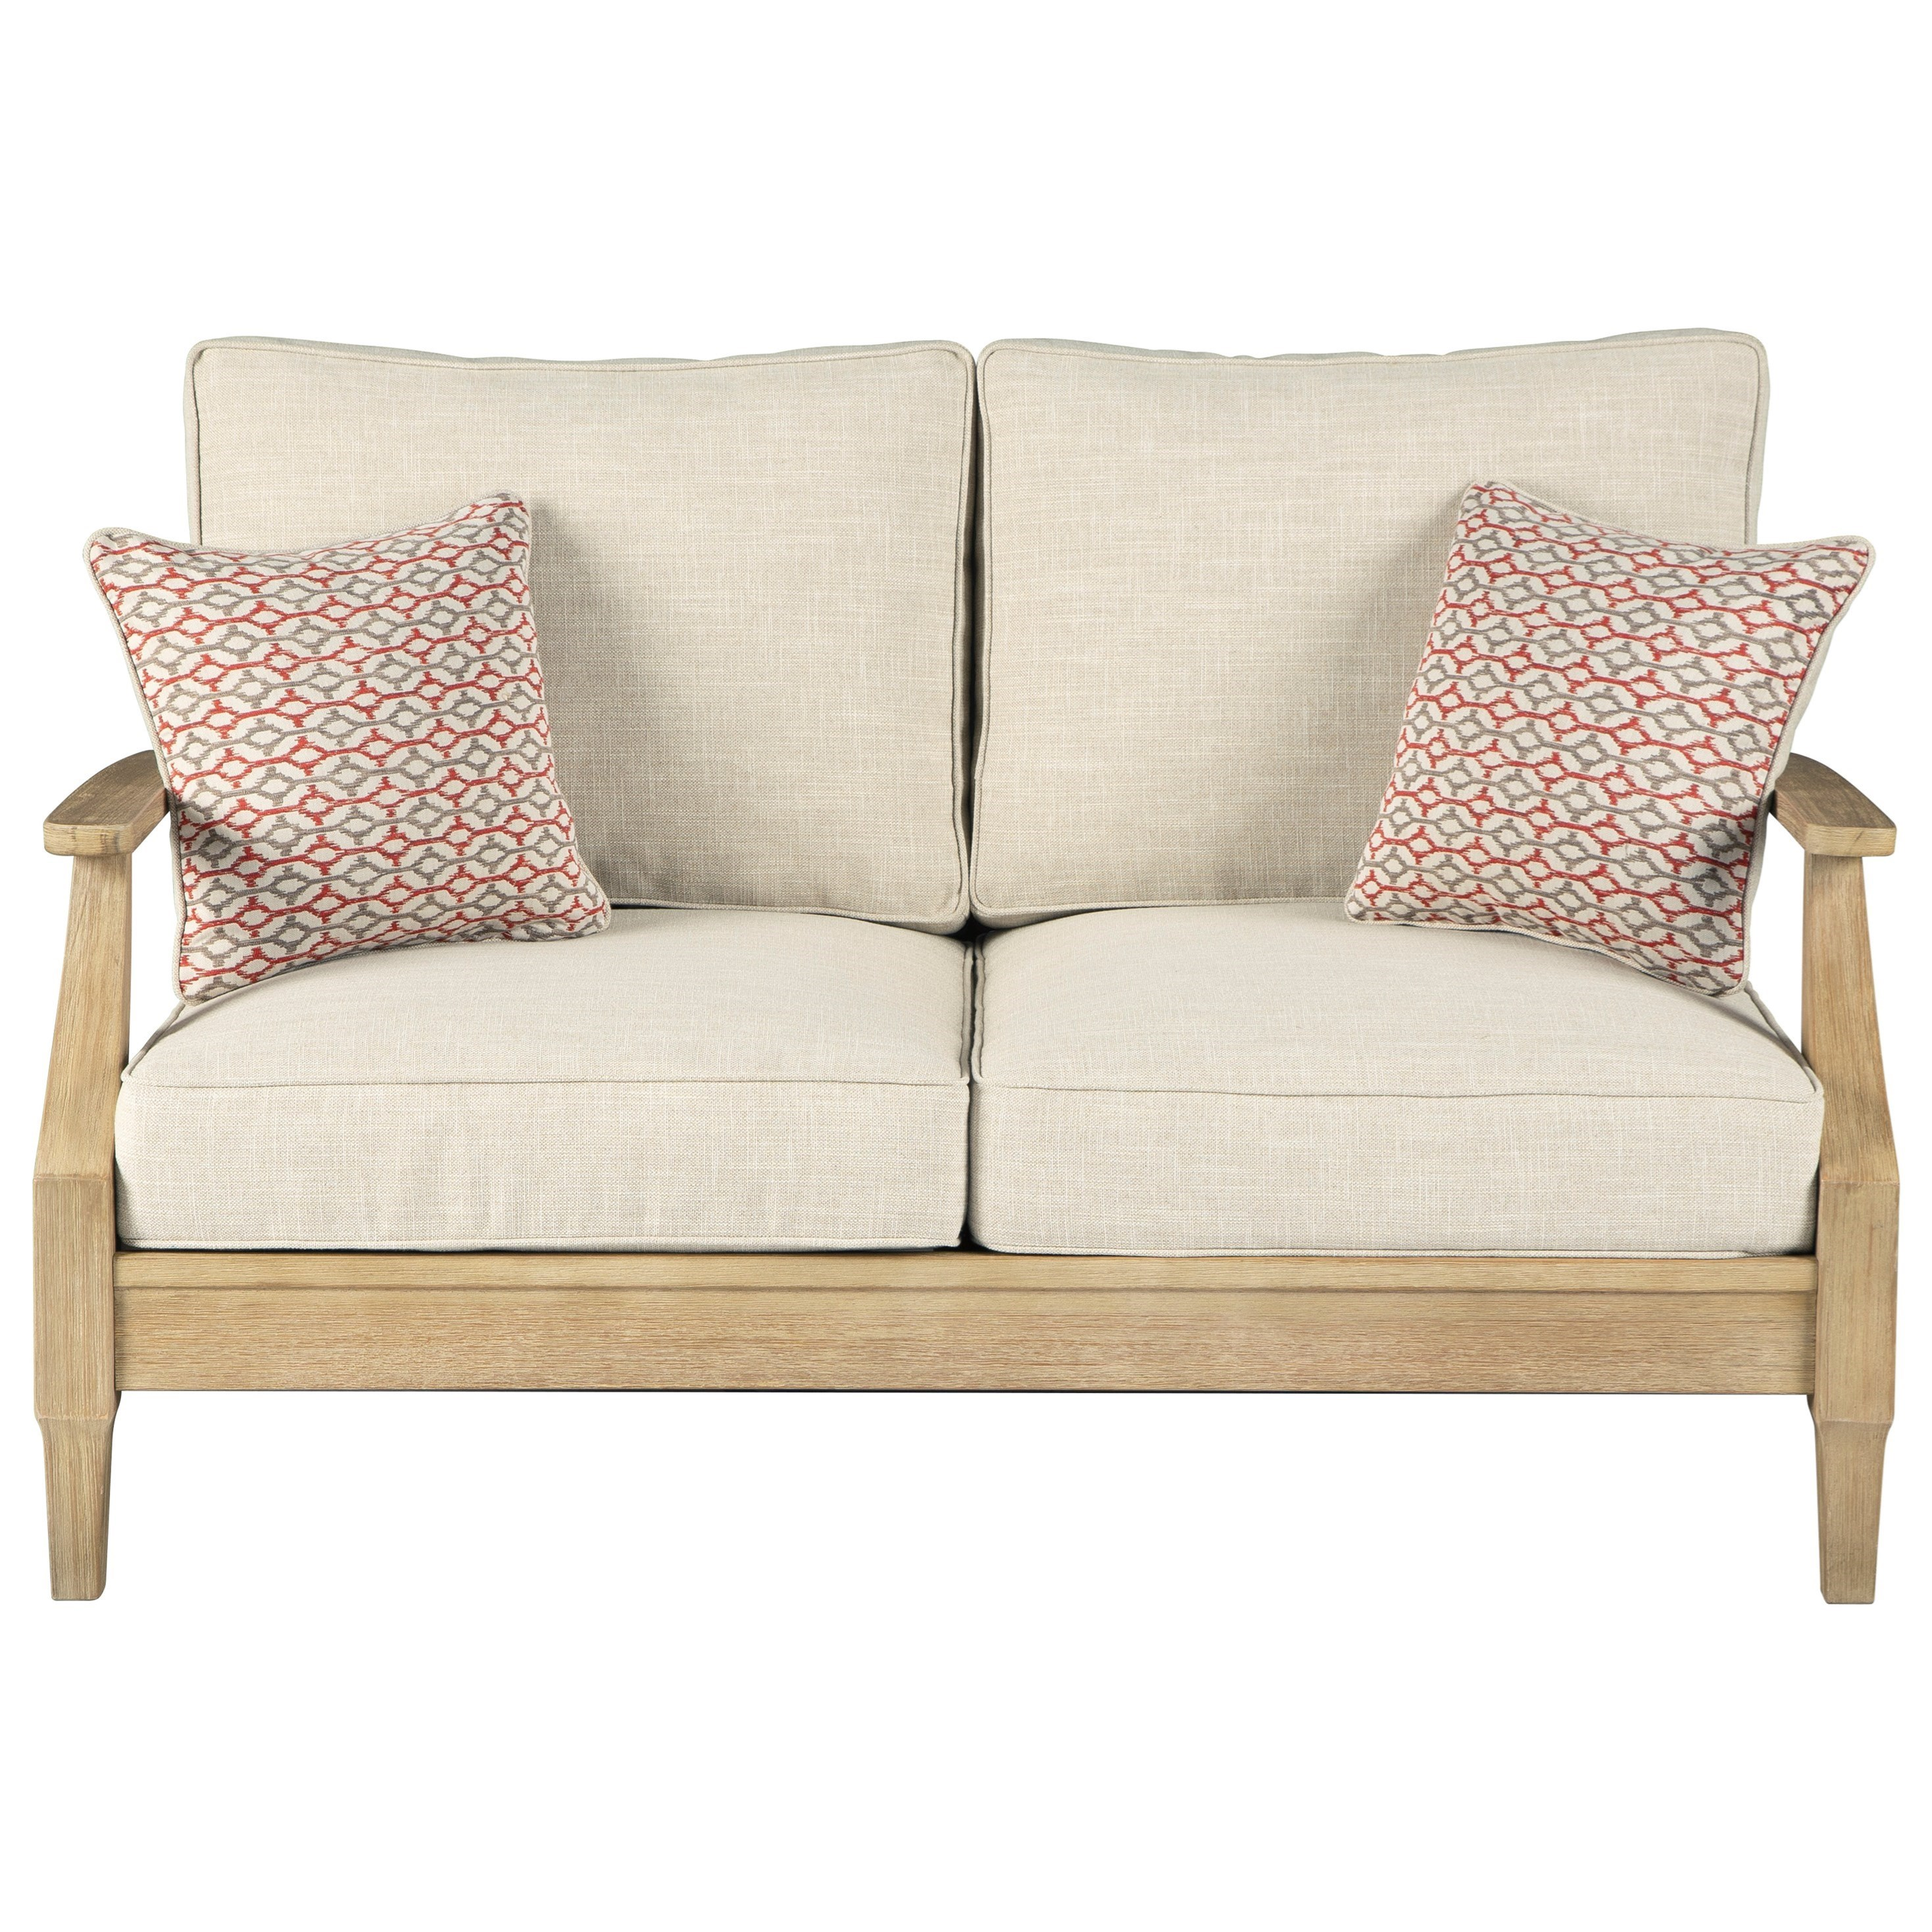 Clare View Loveseat w/ Cushion by Ashley (Signature Design) at Johnny Janosik